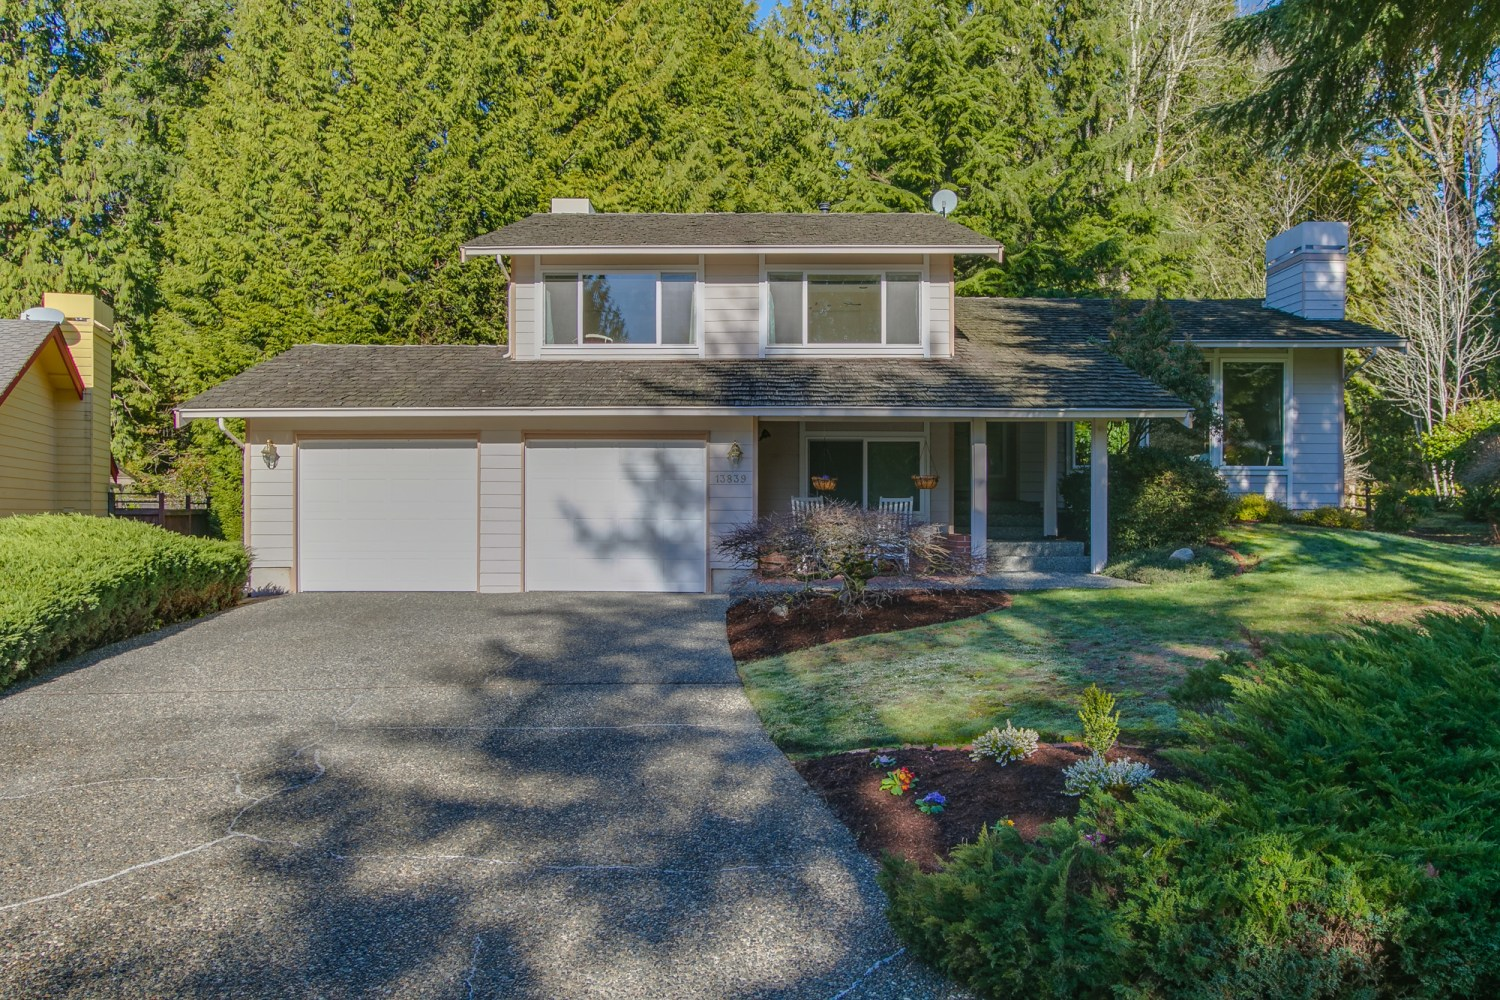 13839 174th Pl NE - Redmond-3